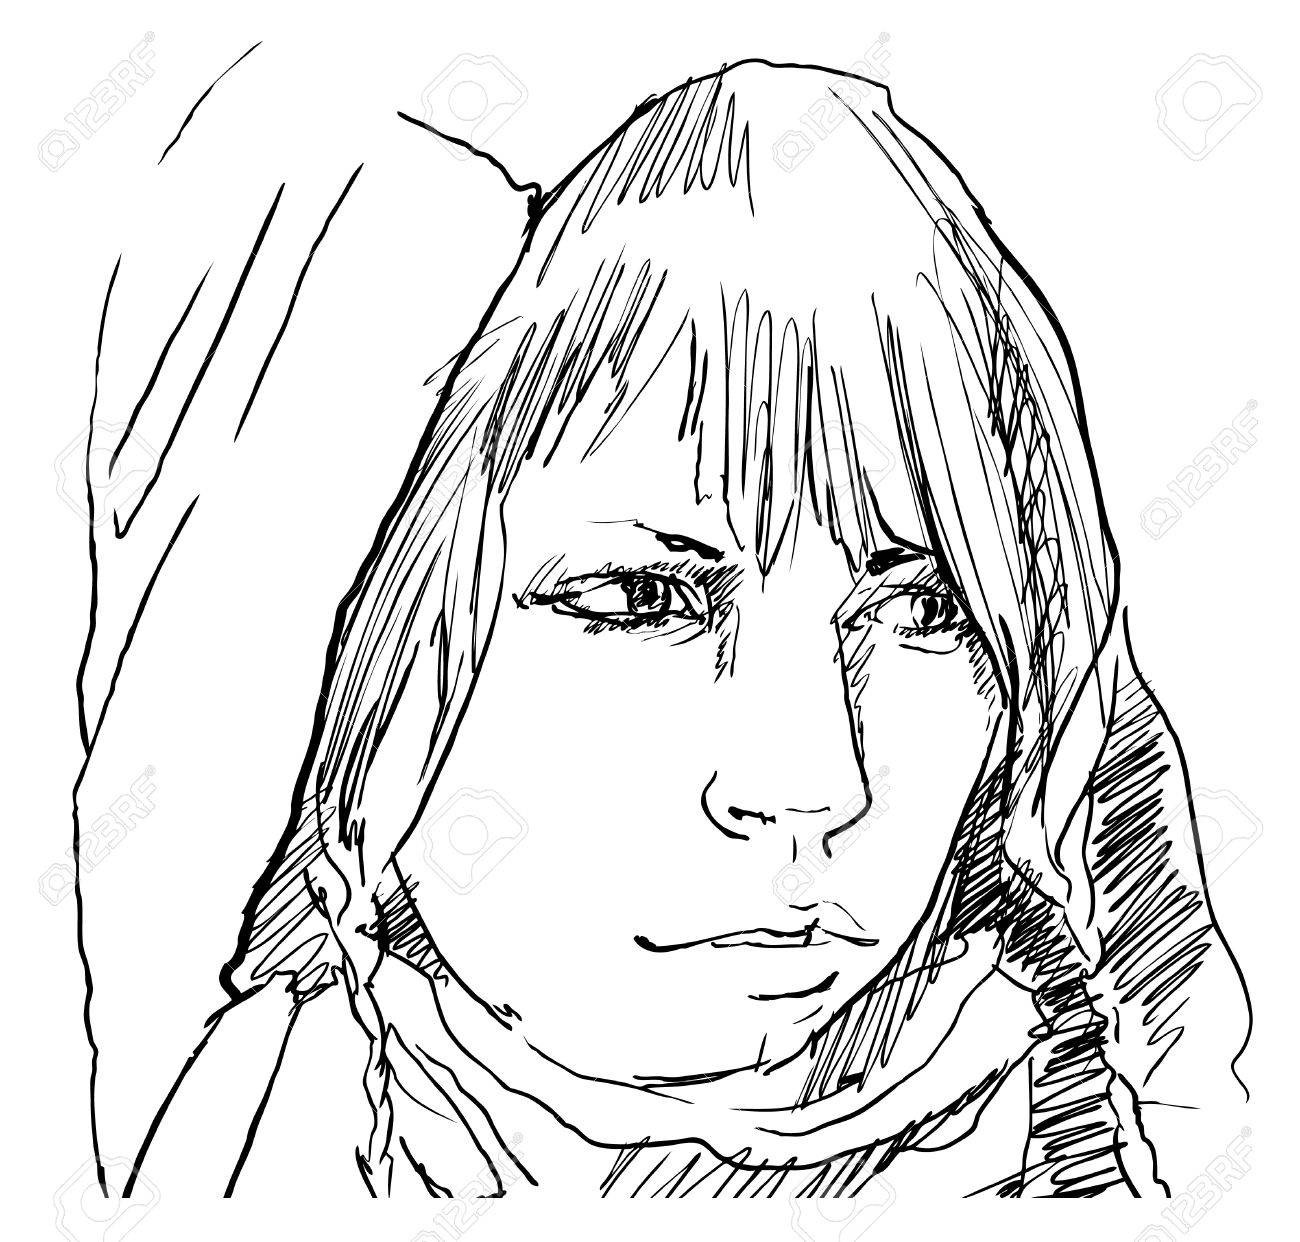 1300x1242 Woman In Hood Pencil Drawing, Vector Royalty Free Cliparts